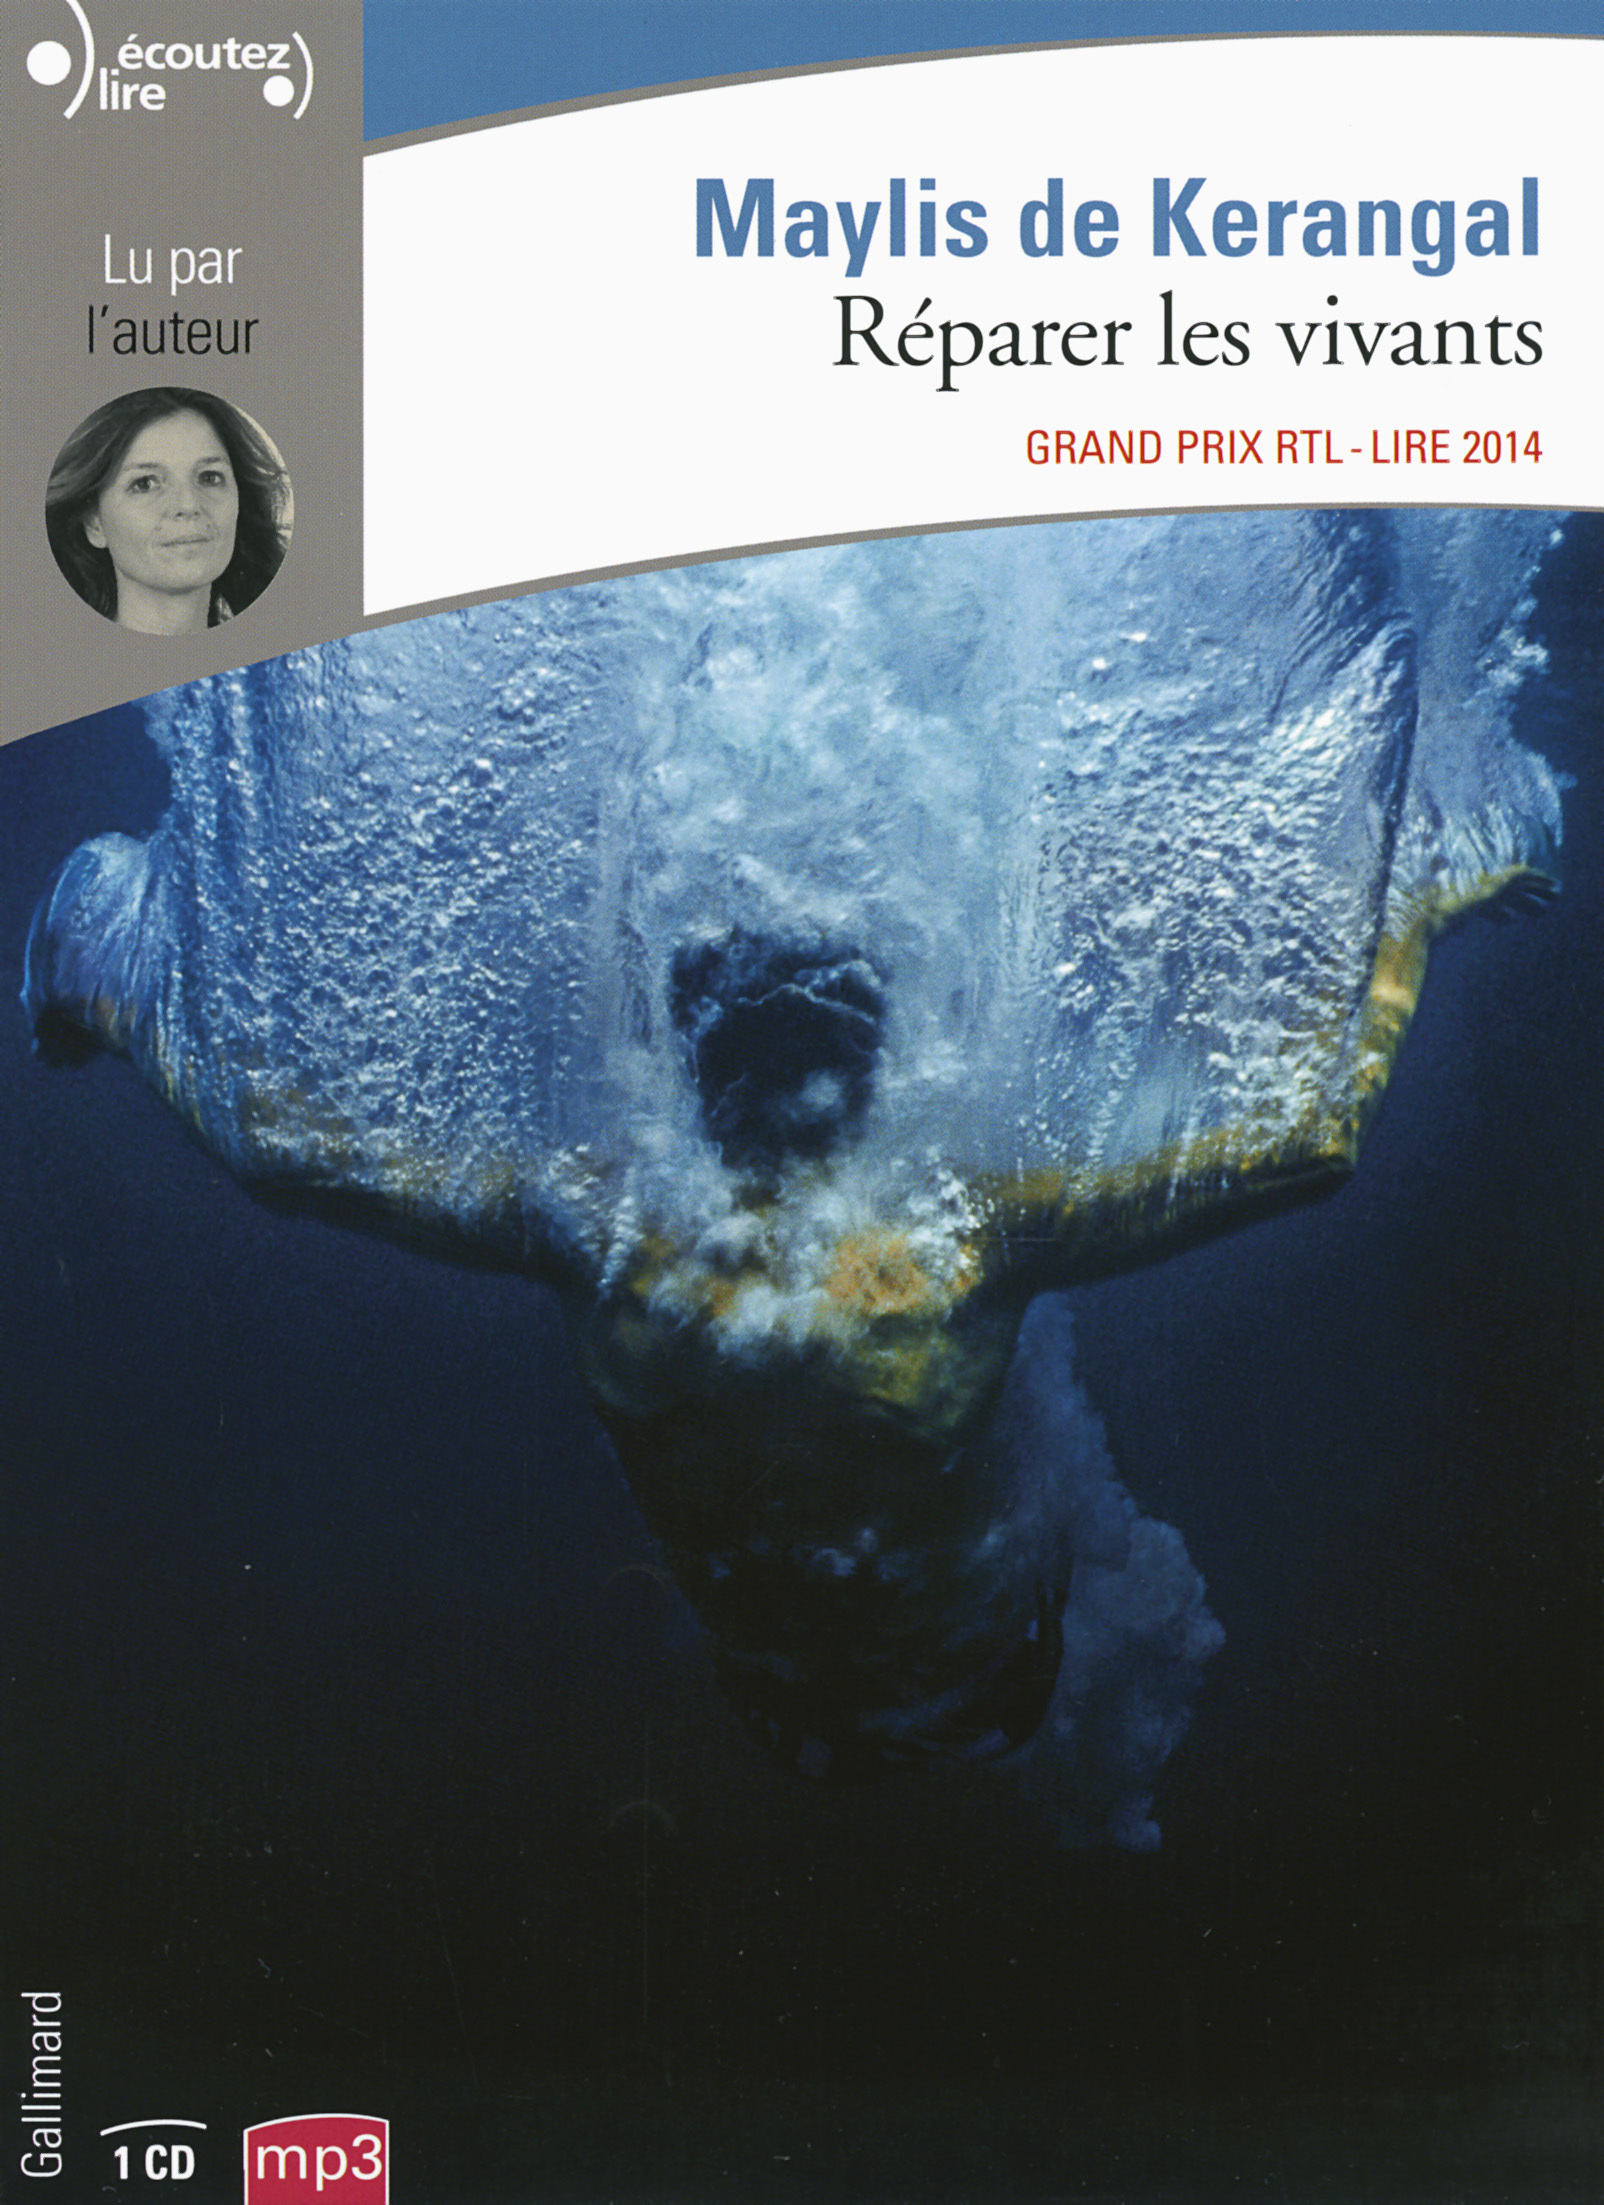 REPARER LES VIVANTS CD